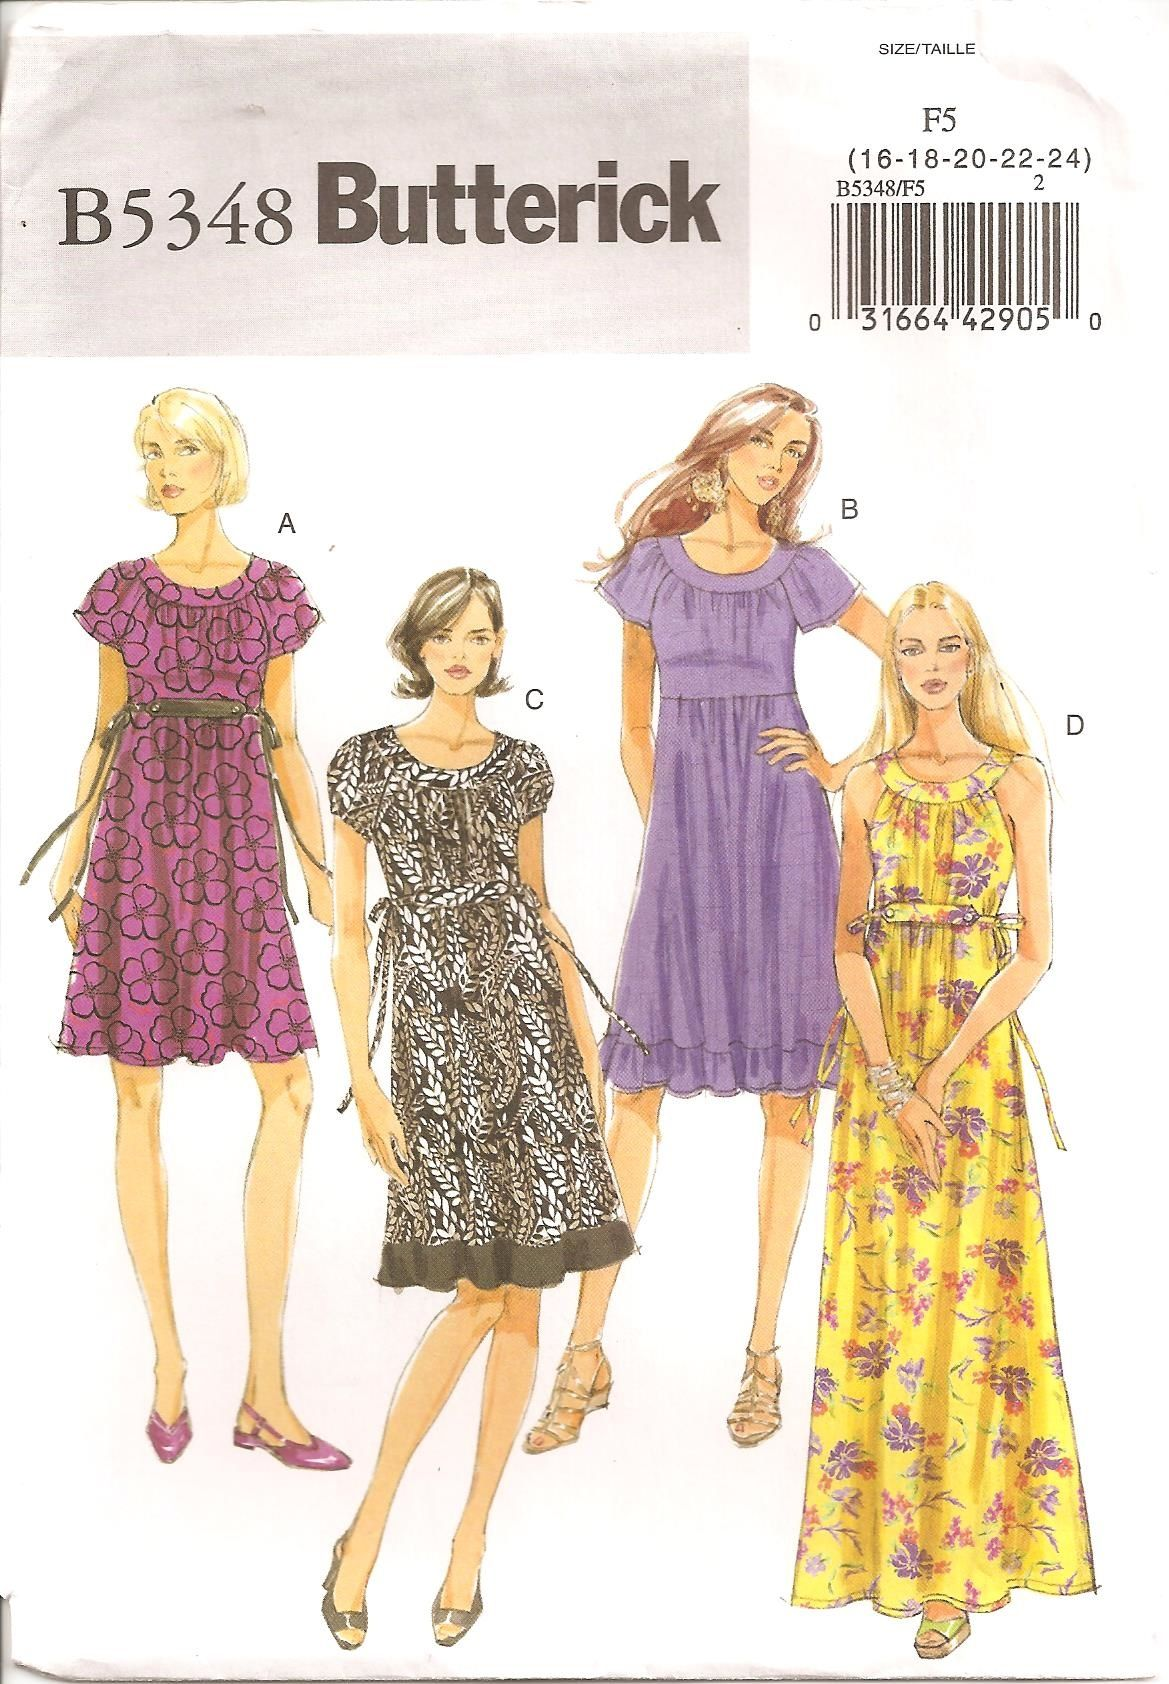 Butterick 5348 Pattern Misses Dress Sizes 16 Thru 24 Dress In Three Lengths With Raglan Sleeves Or Dress Sewing Pattern Pretty Boho Dresses Sewing Dresses [ 1684 x 1169 Pixel ]